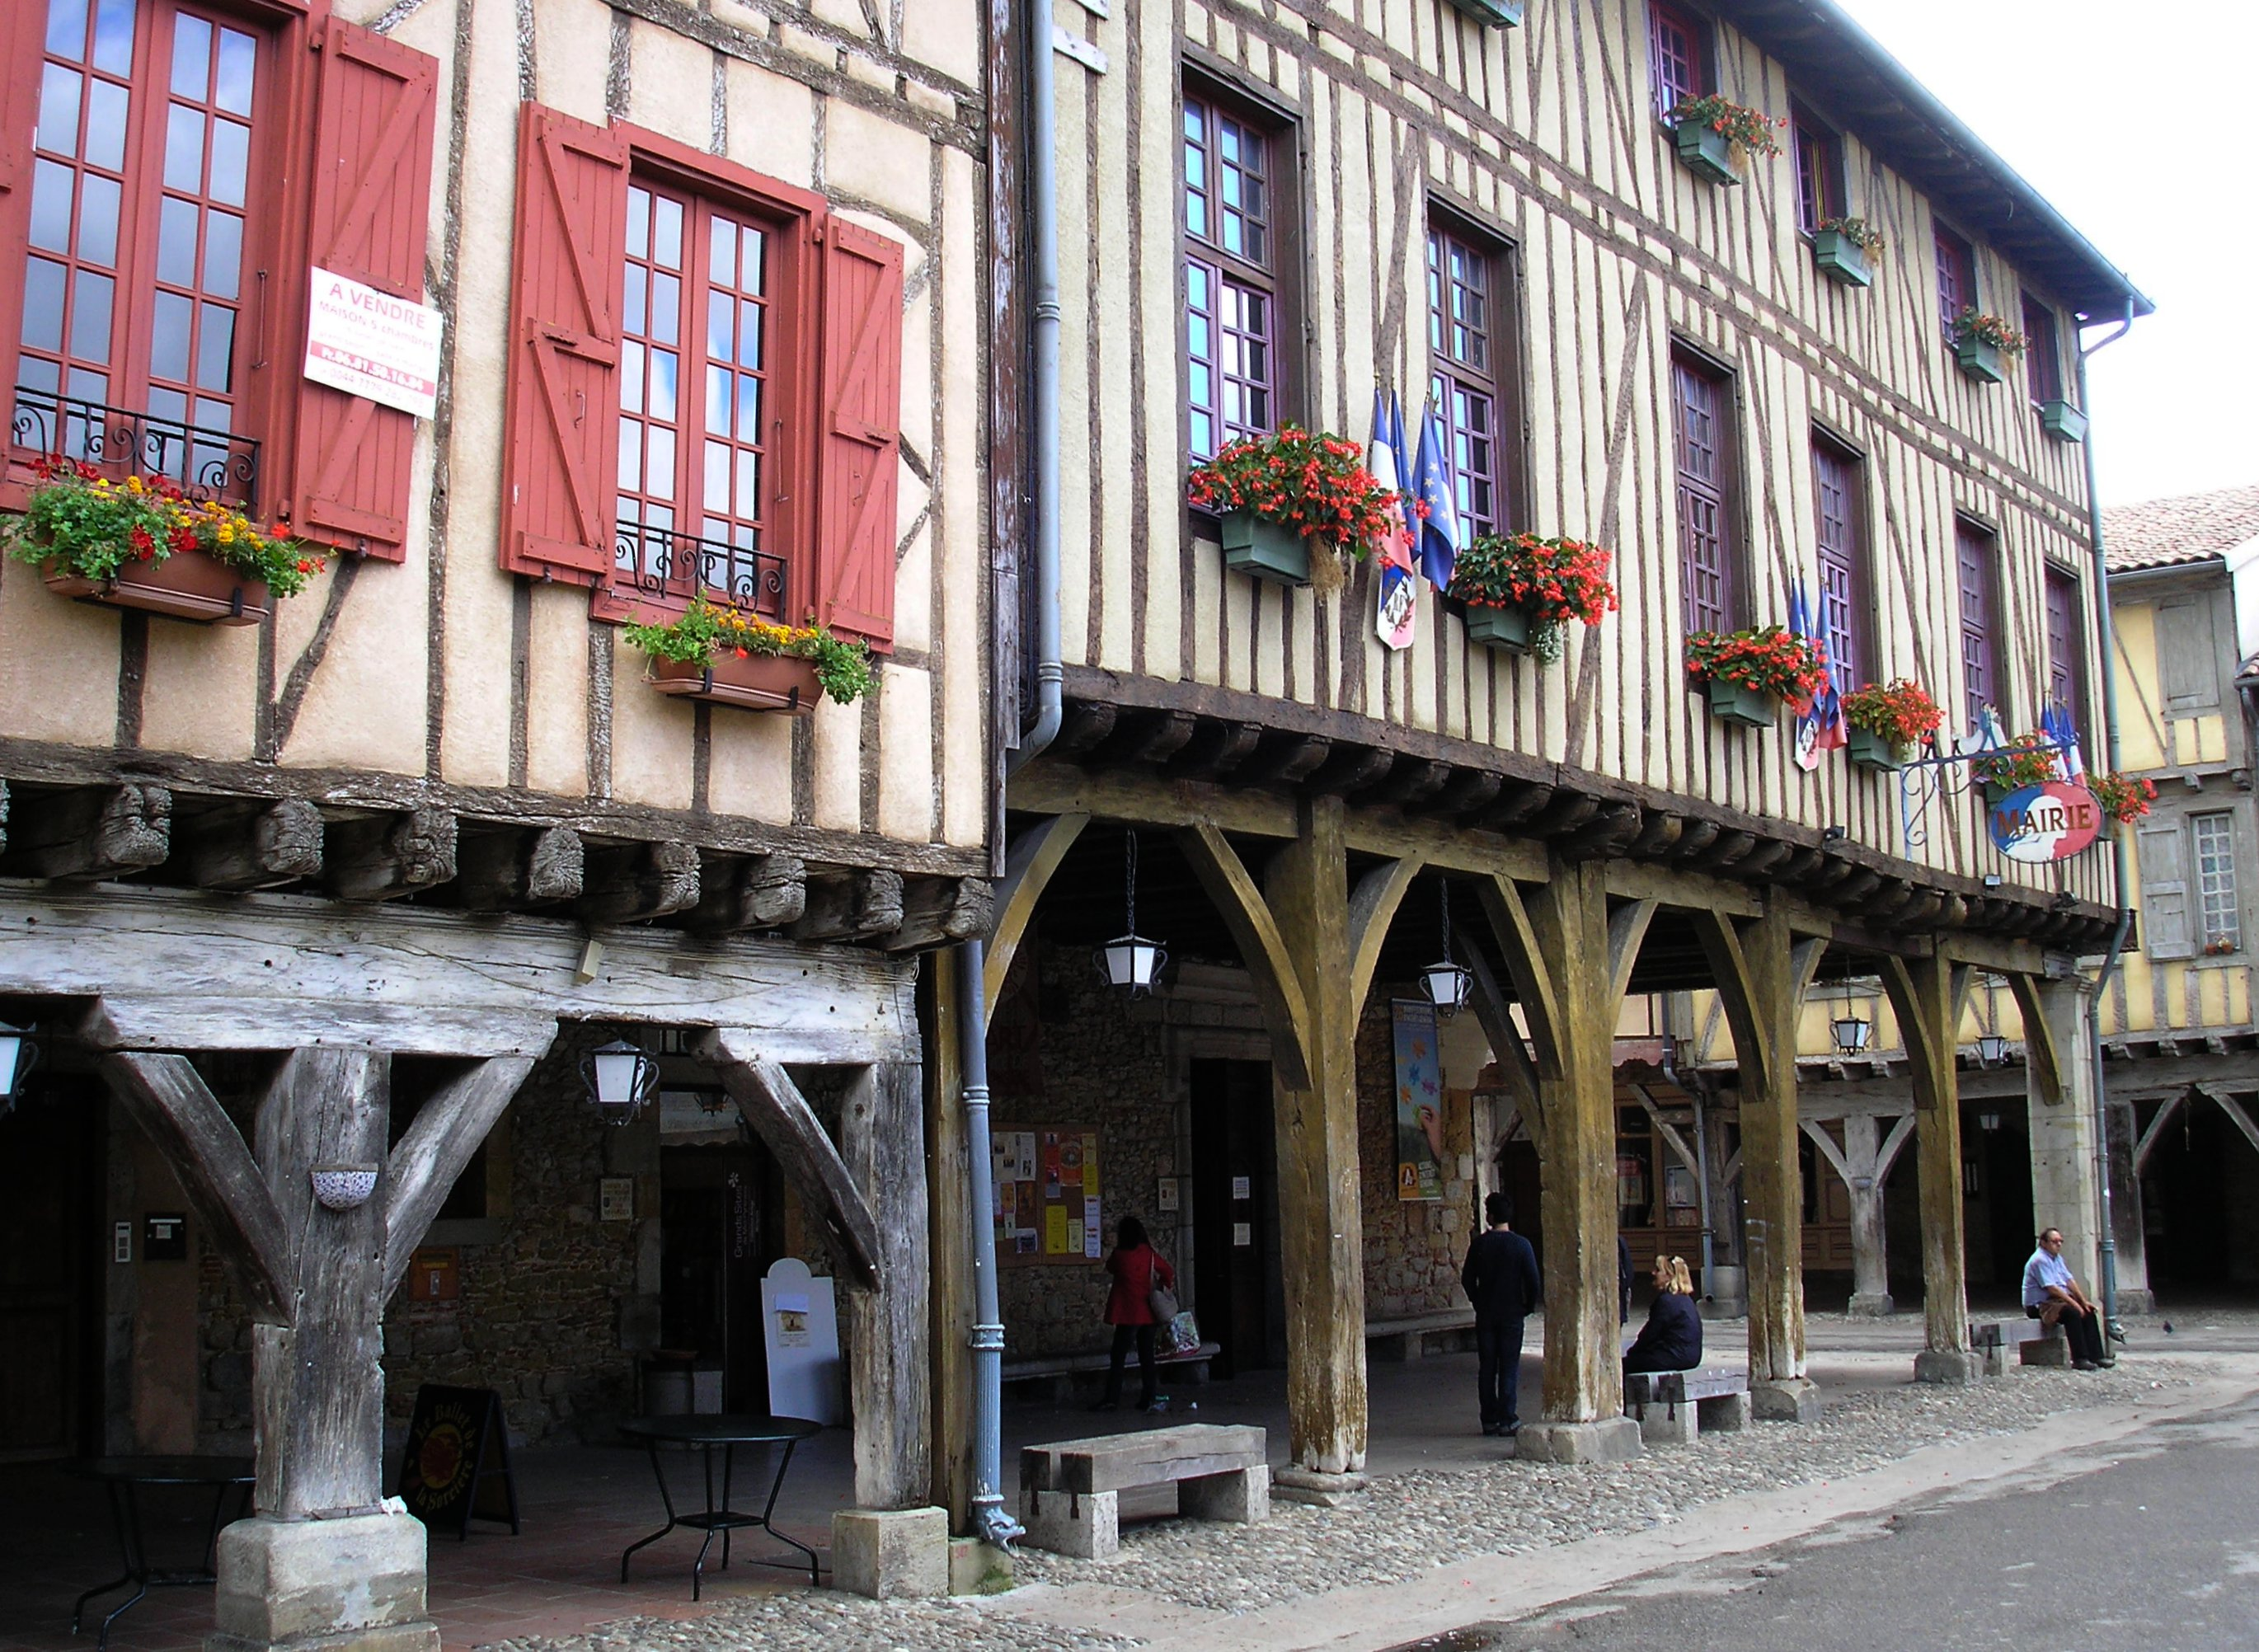 https://upload.wikimedia.org/wikipedia/commons/b/be/Mirepoix,_France,_24_September_2012_(12).jpg